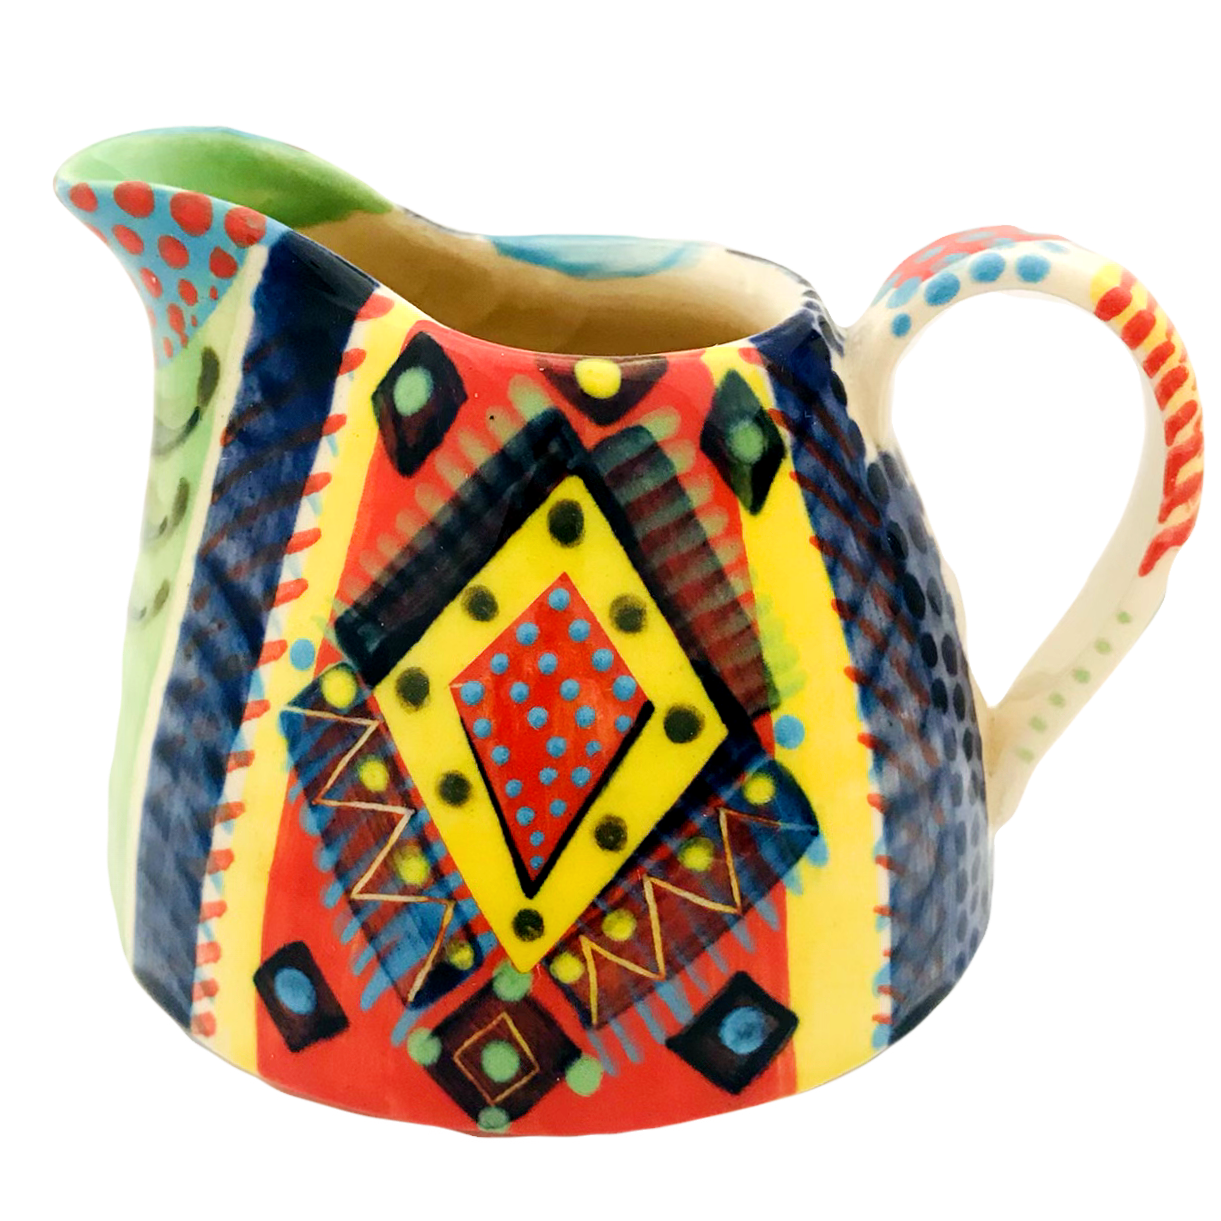 Pru Green-Jug-Colourful-Pottery-Church S